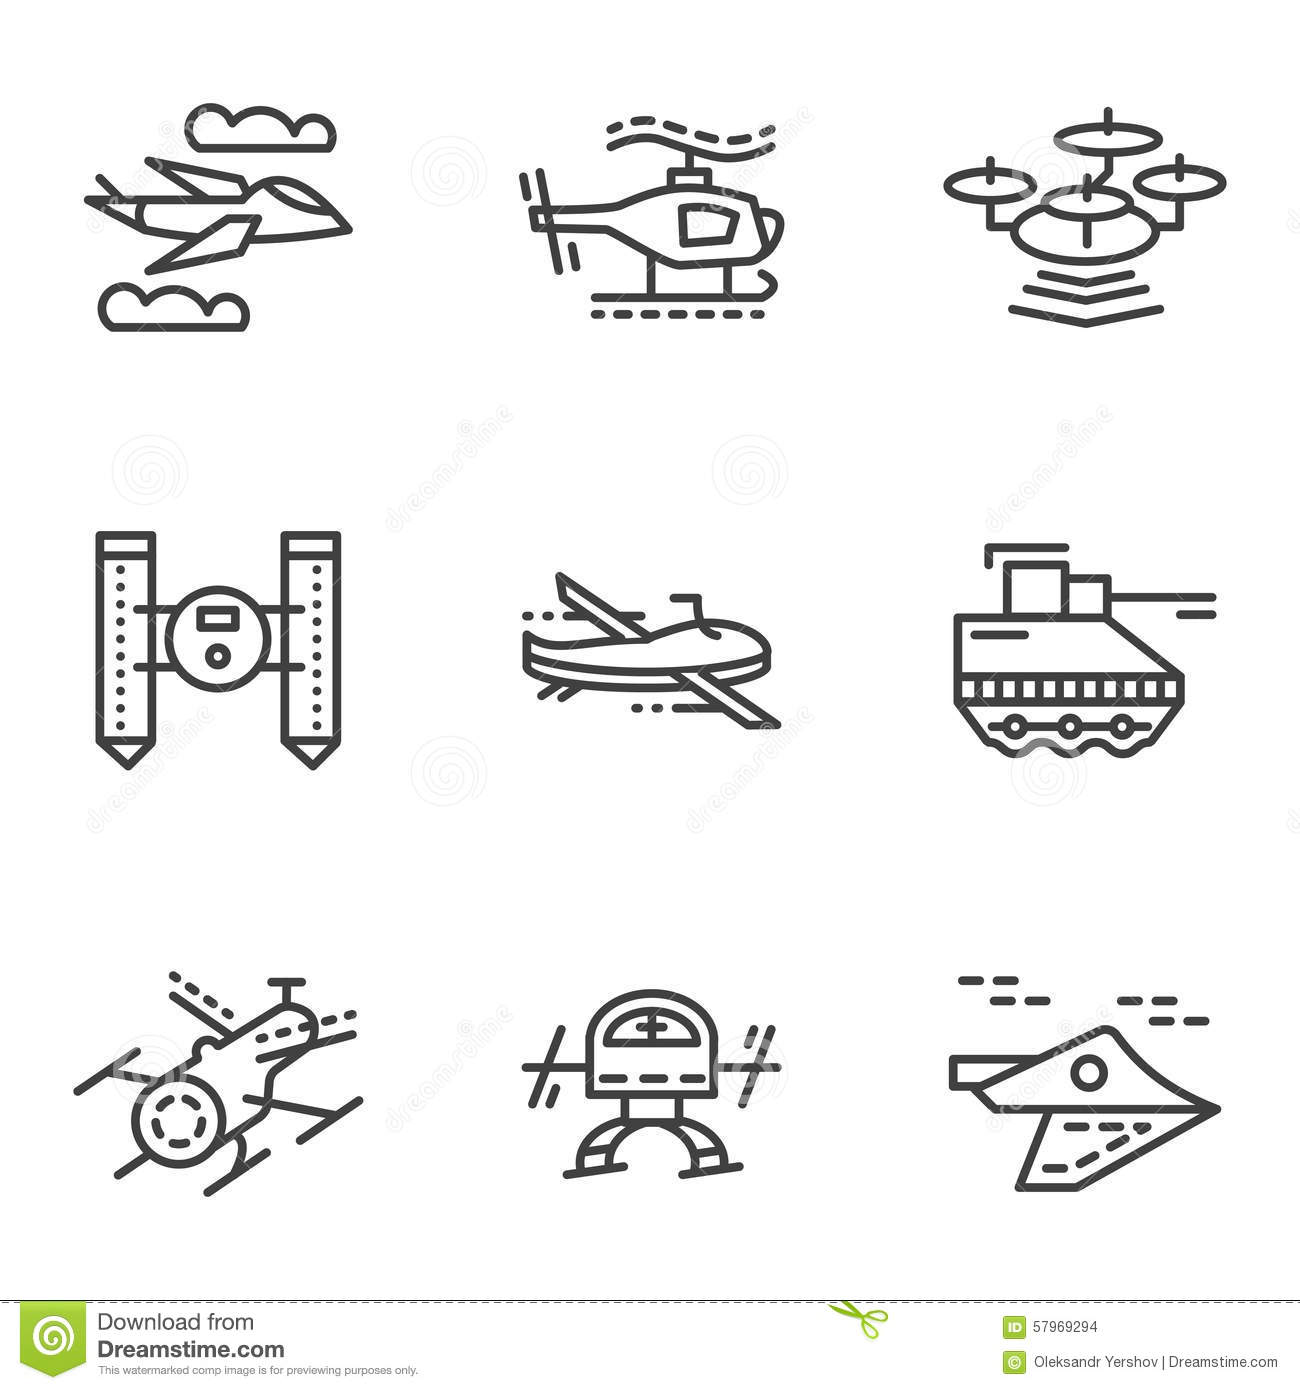 Military Drones Simple Line Icons Stock Illustration